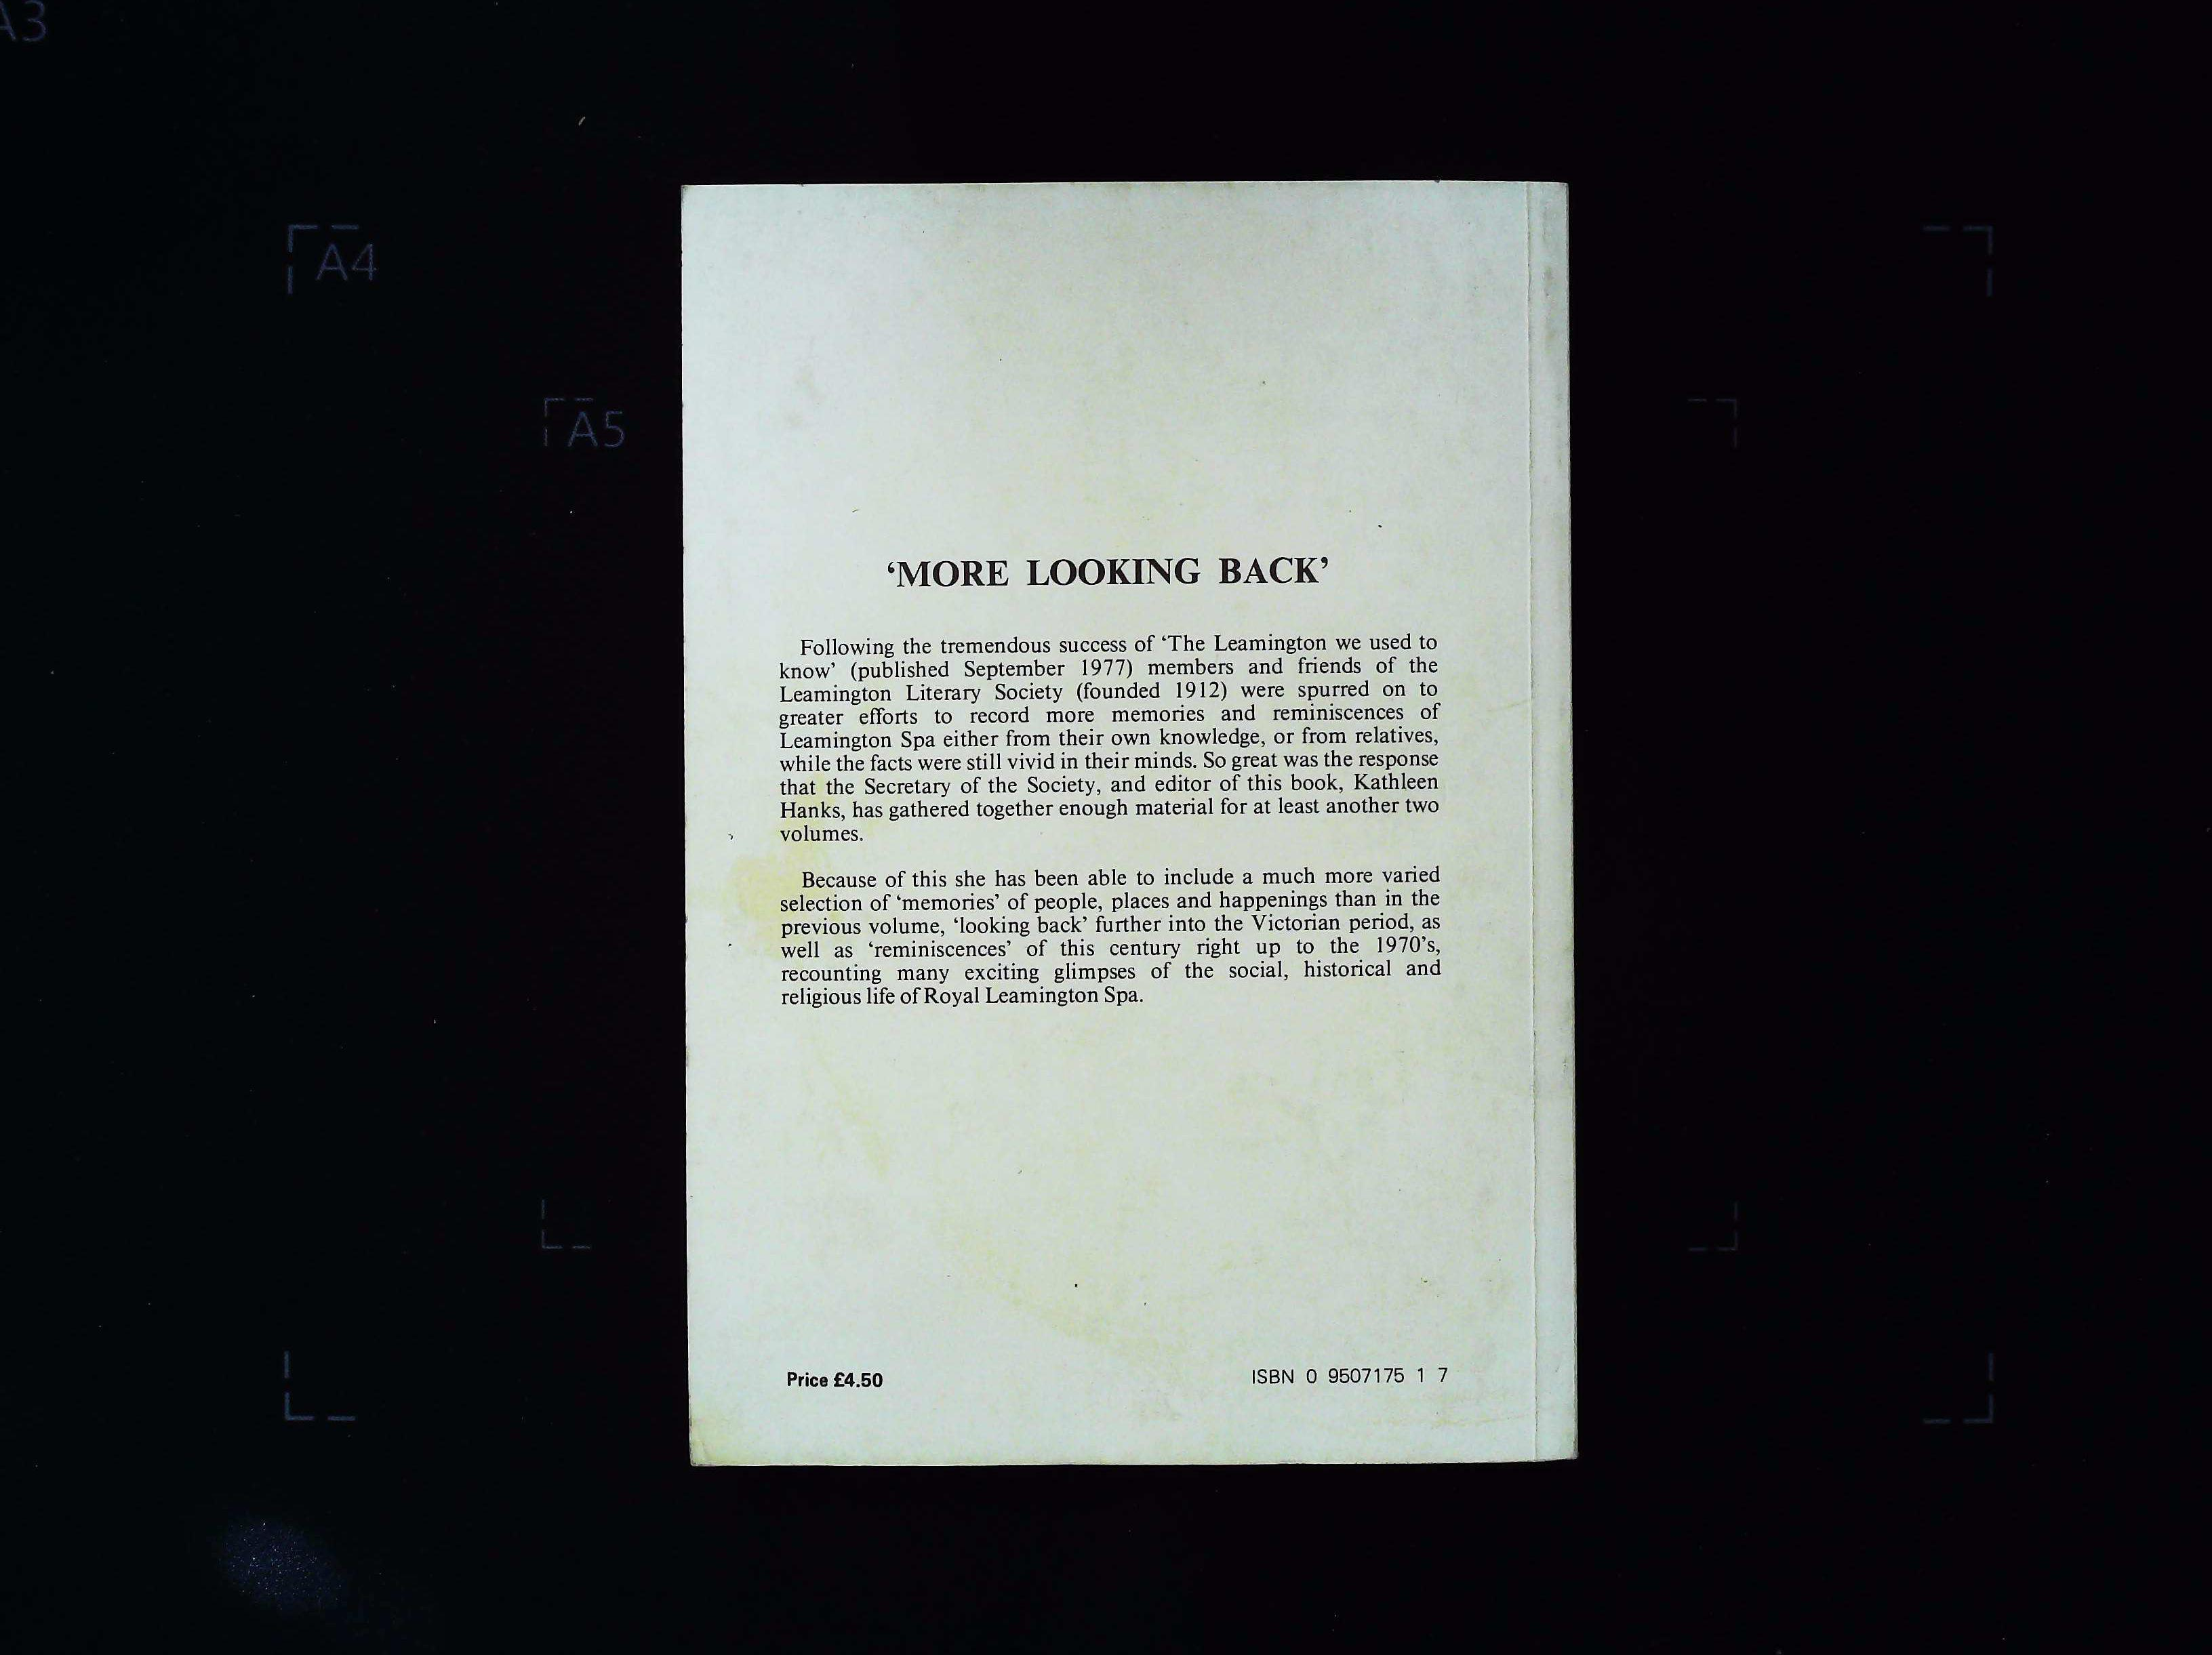 More Looking Back paperback book by The Leamington Literary Society. Published 1980. 181 pages. - Image 2 of 3